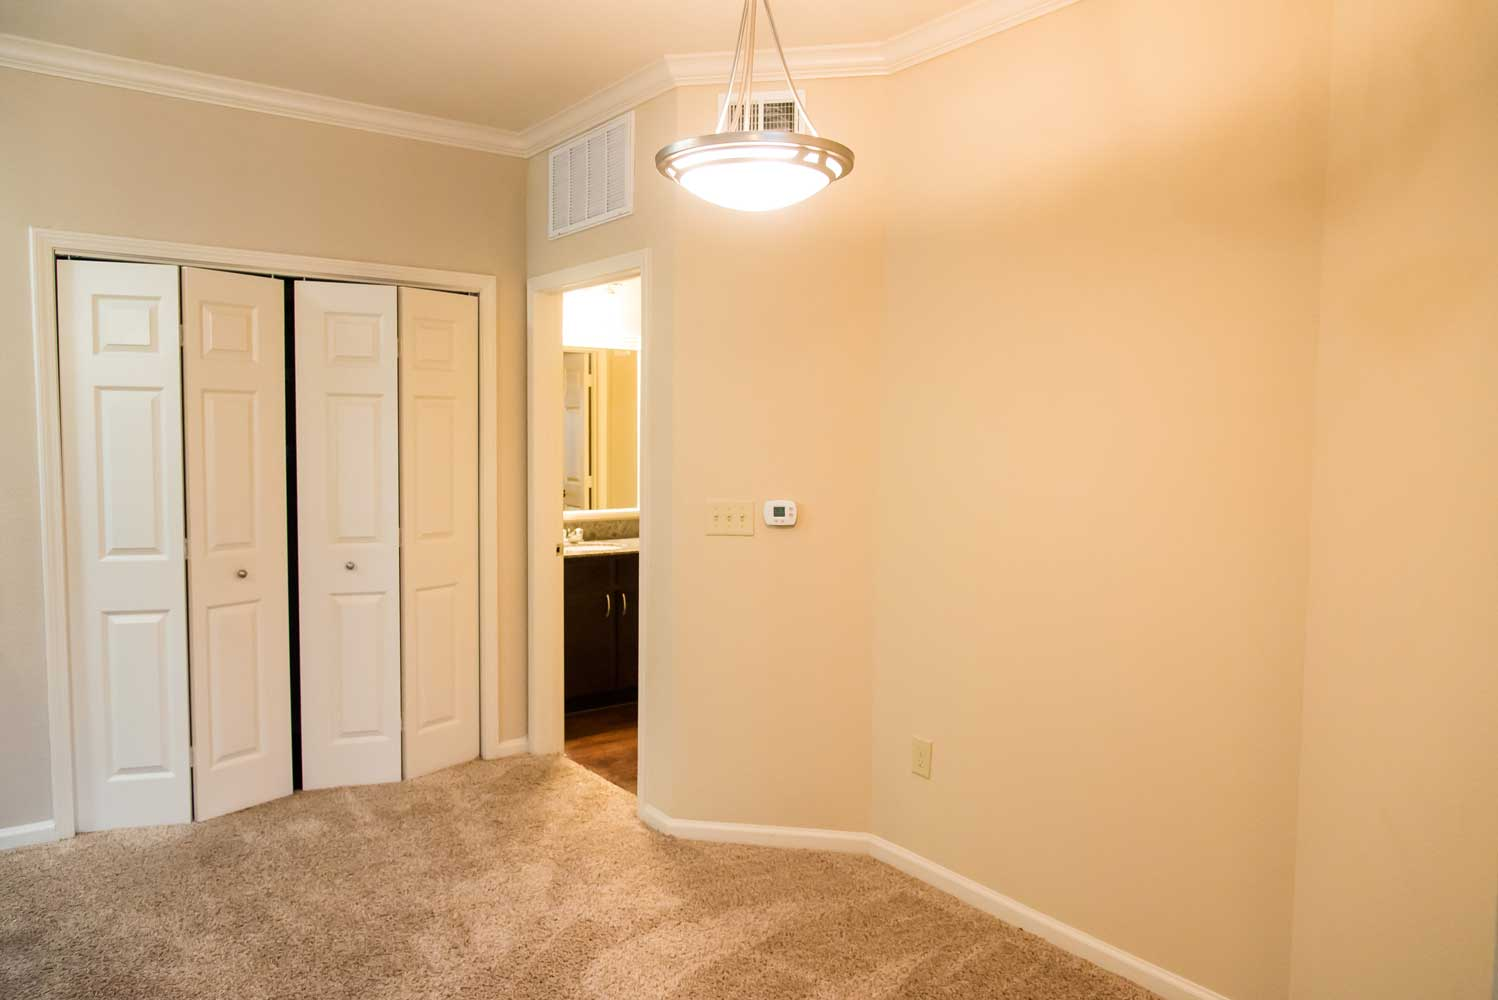 Neutral Color Scheme at the Oxford at Country Club Apartments in Baytown, TX